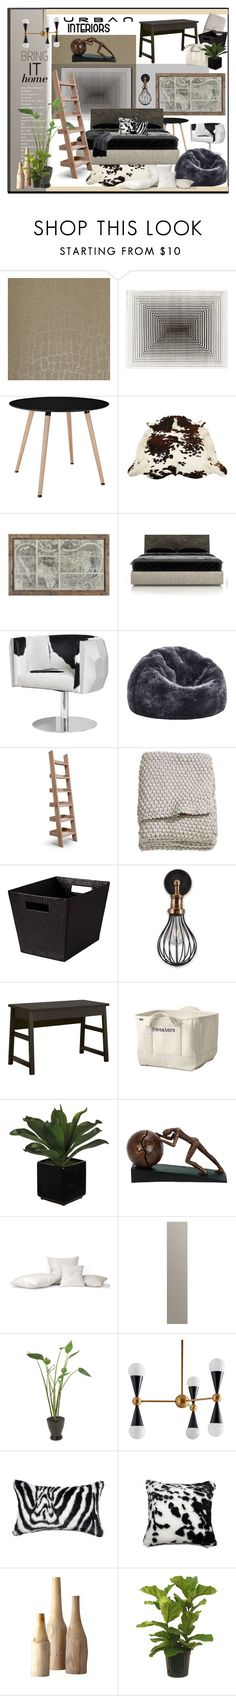 """""""Bedroom Styles"""" by idetached ❤ liked on Polyvore featuring interior, interiors, interior design, home, home decor, interior decorating, Today Interiors, Amara, Huppé and Dot & Bo"""